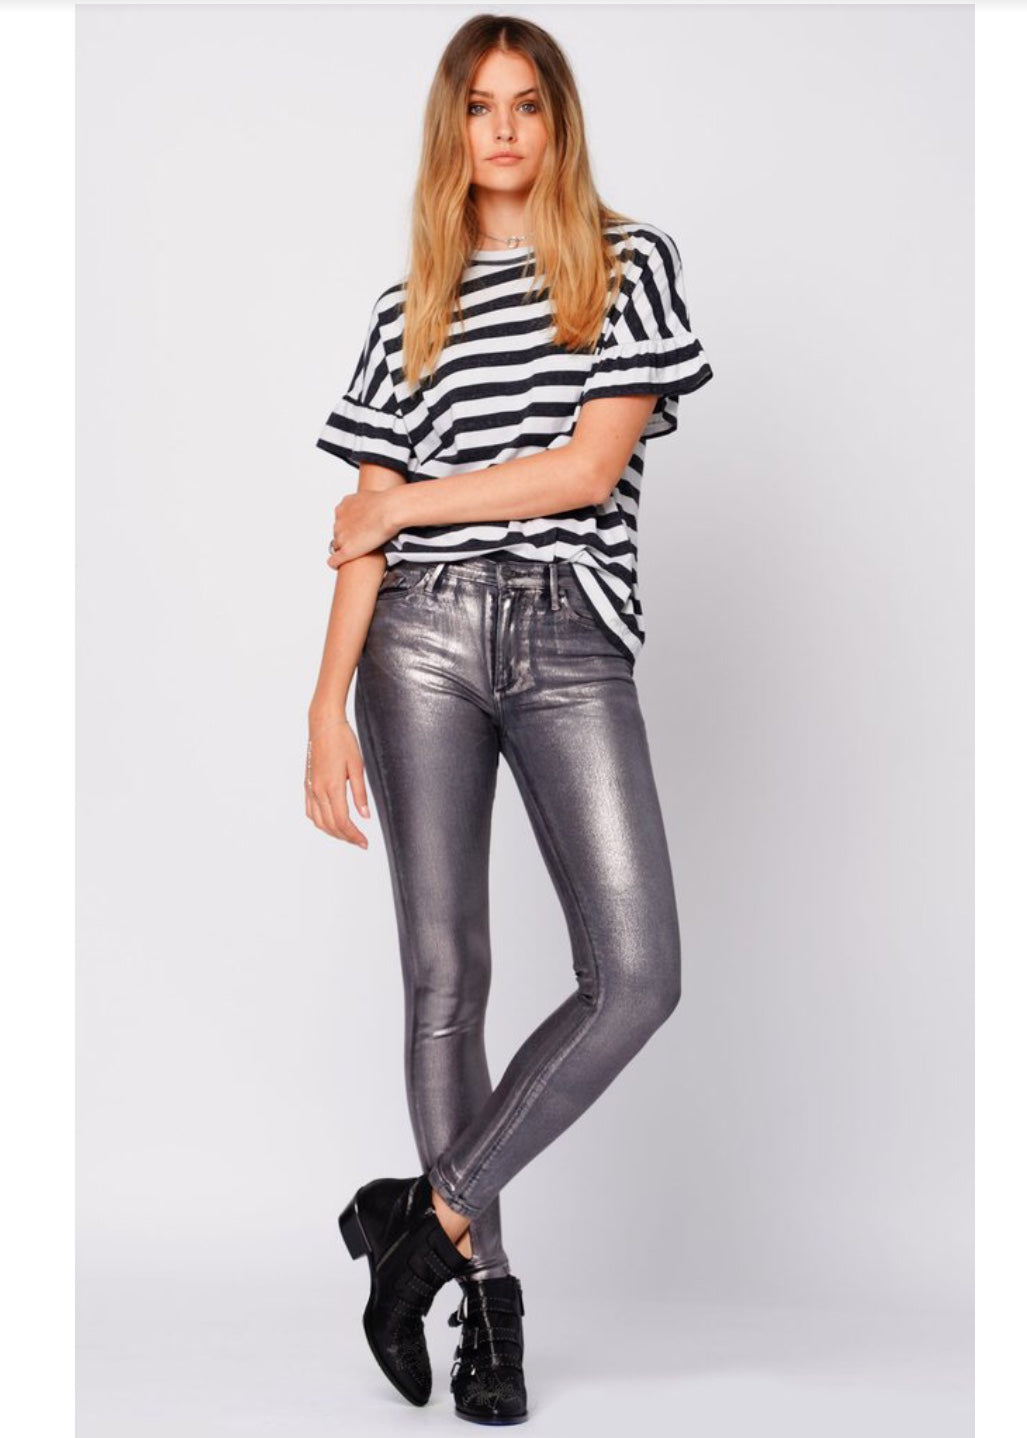 Black Orchid Denim GISELE HIGH RISE SKINNY WITH FOIL - UP THE AMP - Luxe EQ